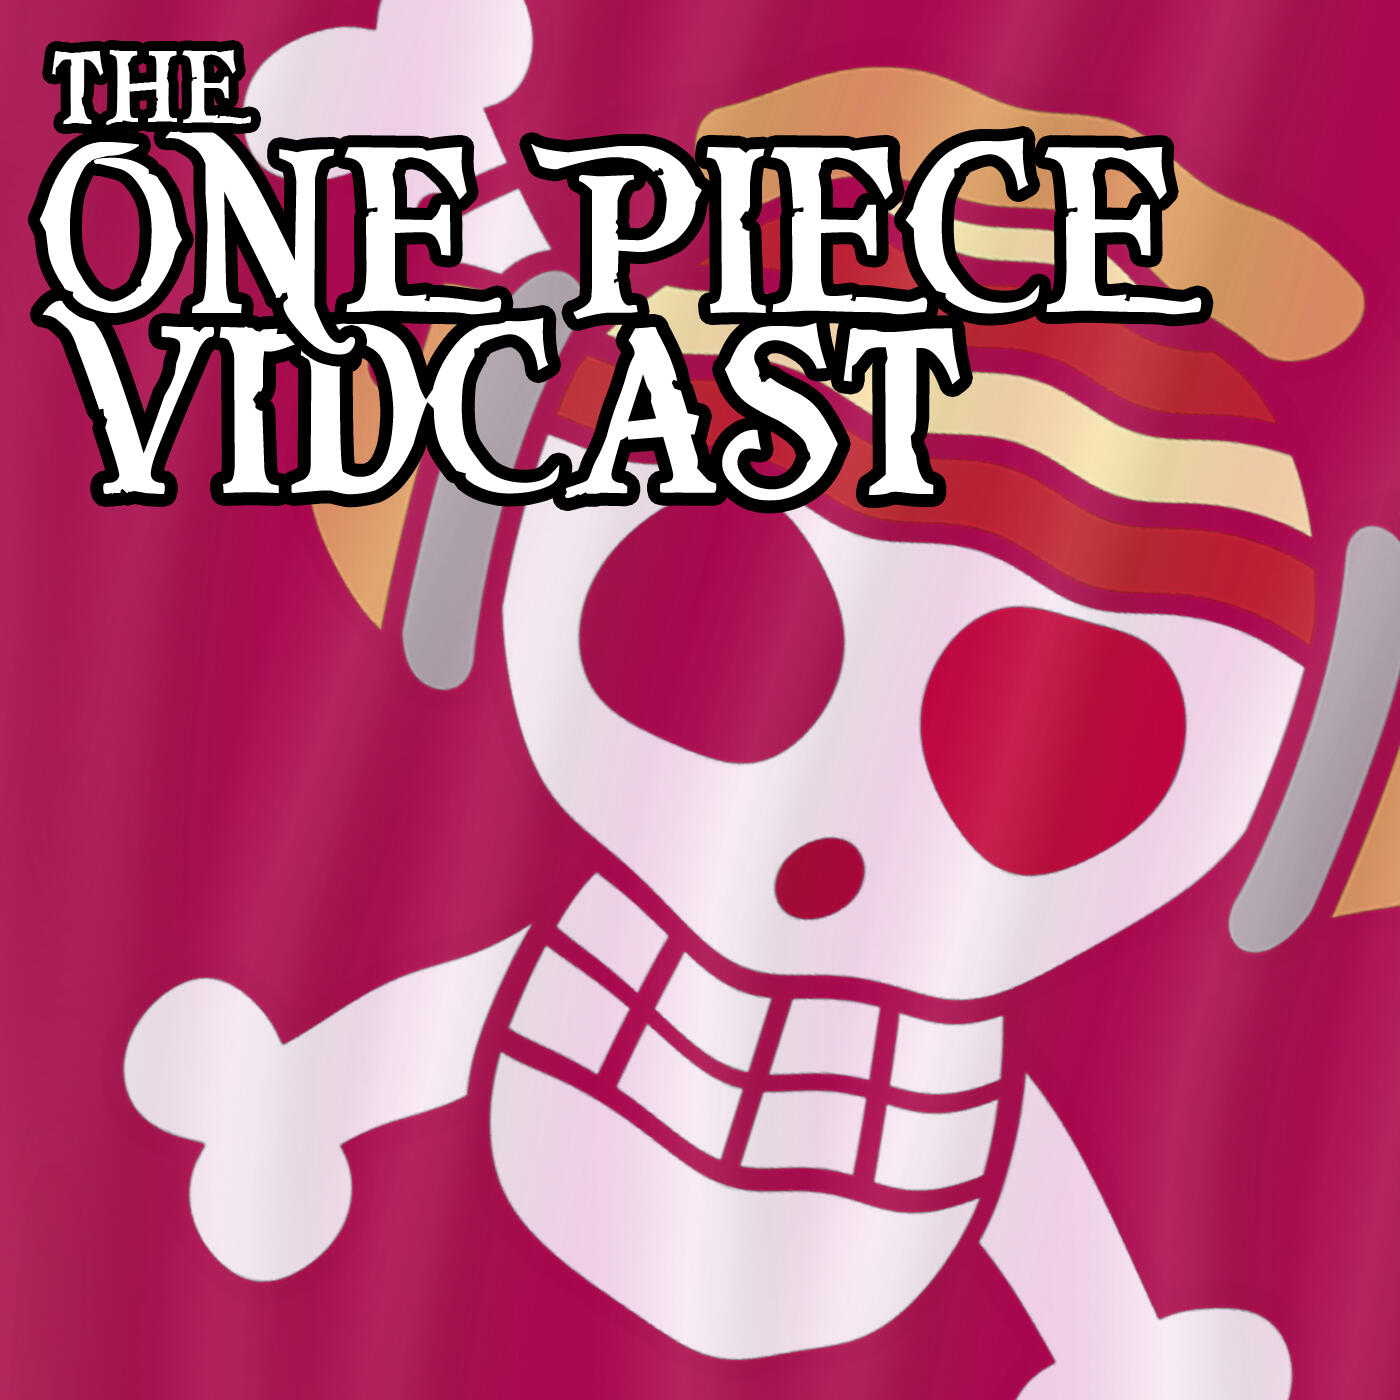 Listen Free to The One Piece Vidcast on iHeartRadio Podcasts